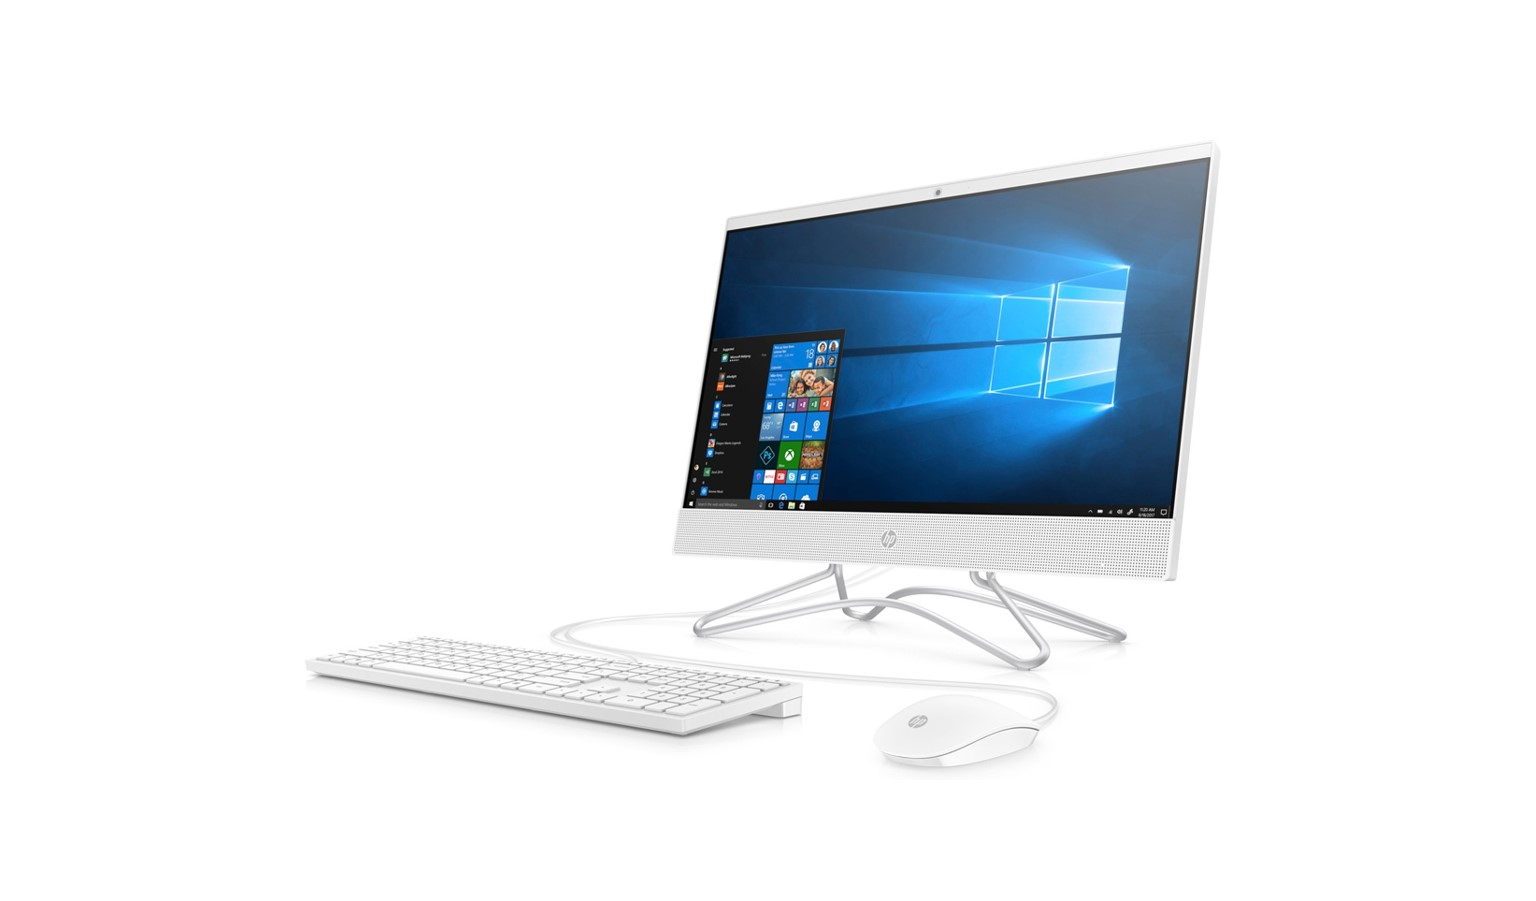 """HP Pavilion 23.8"""" FHD i3 W10 All-in-One Desktop - White"""